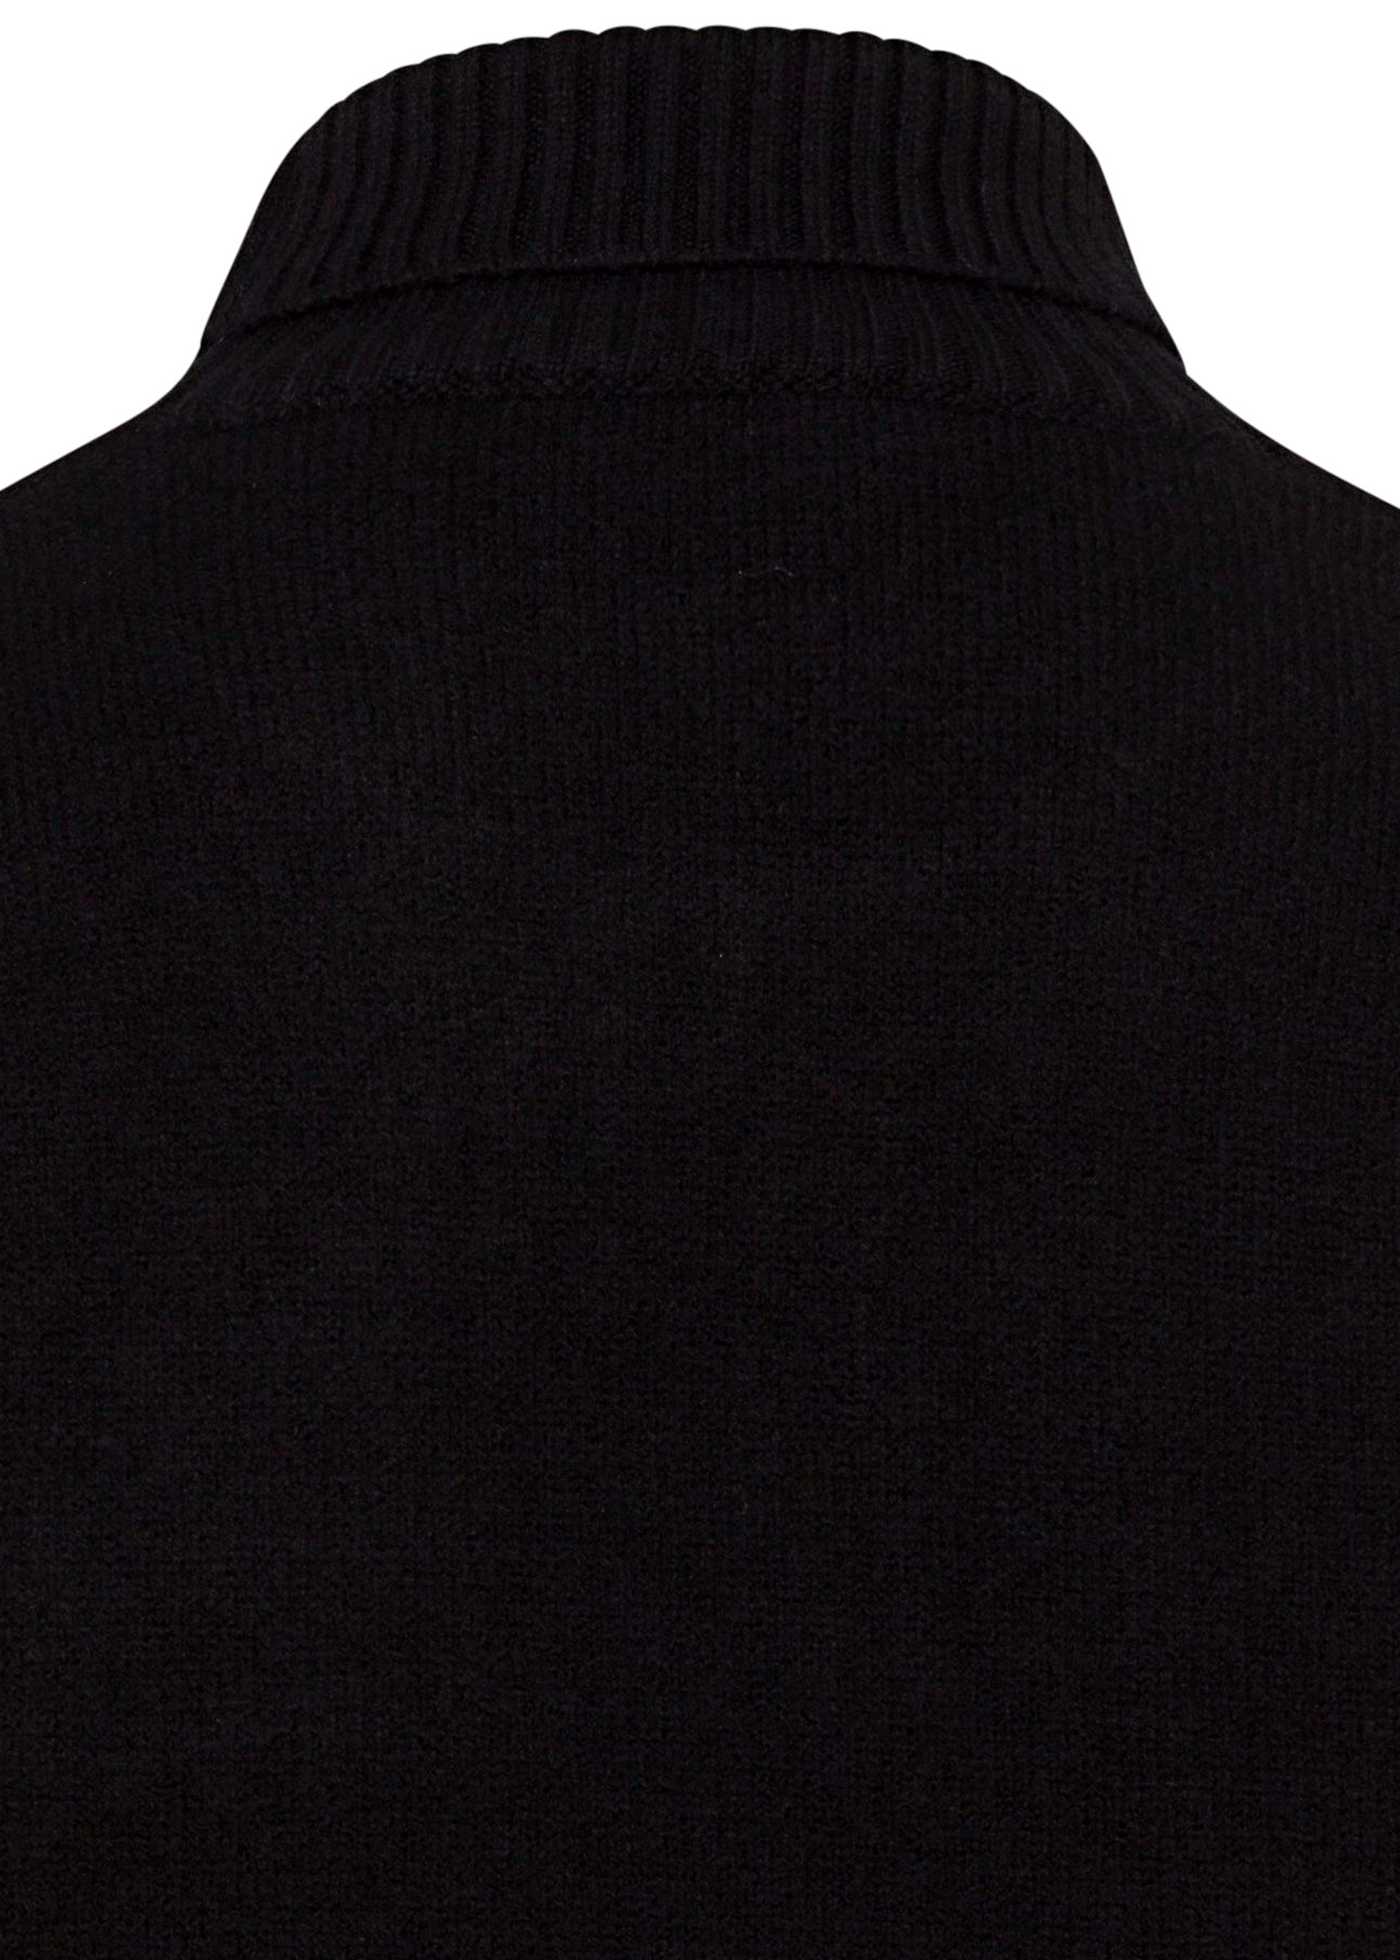 ADC TURTLENECK SWEATER image number 3